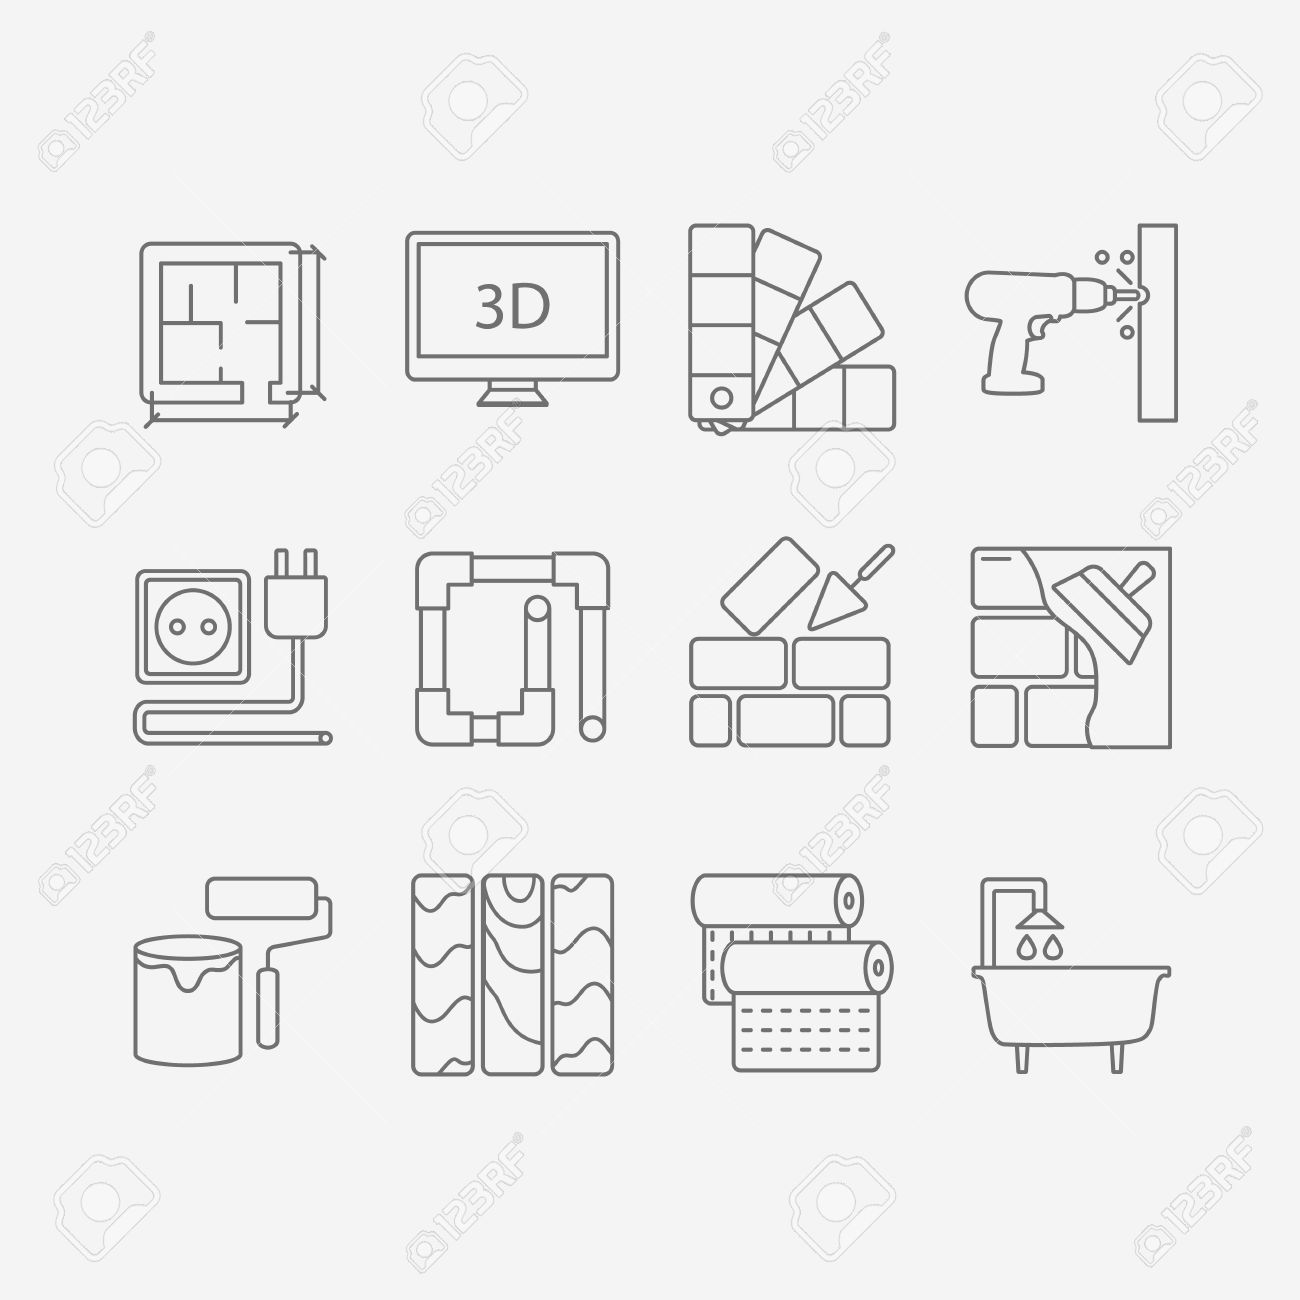 Vector Set Of Modern Flat Line Icons For Interior Design Website Includes Objects Finishing Works